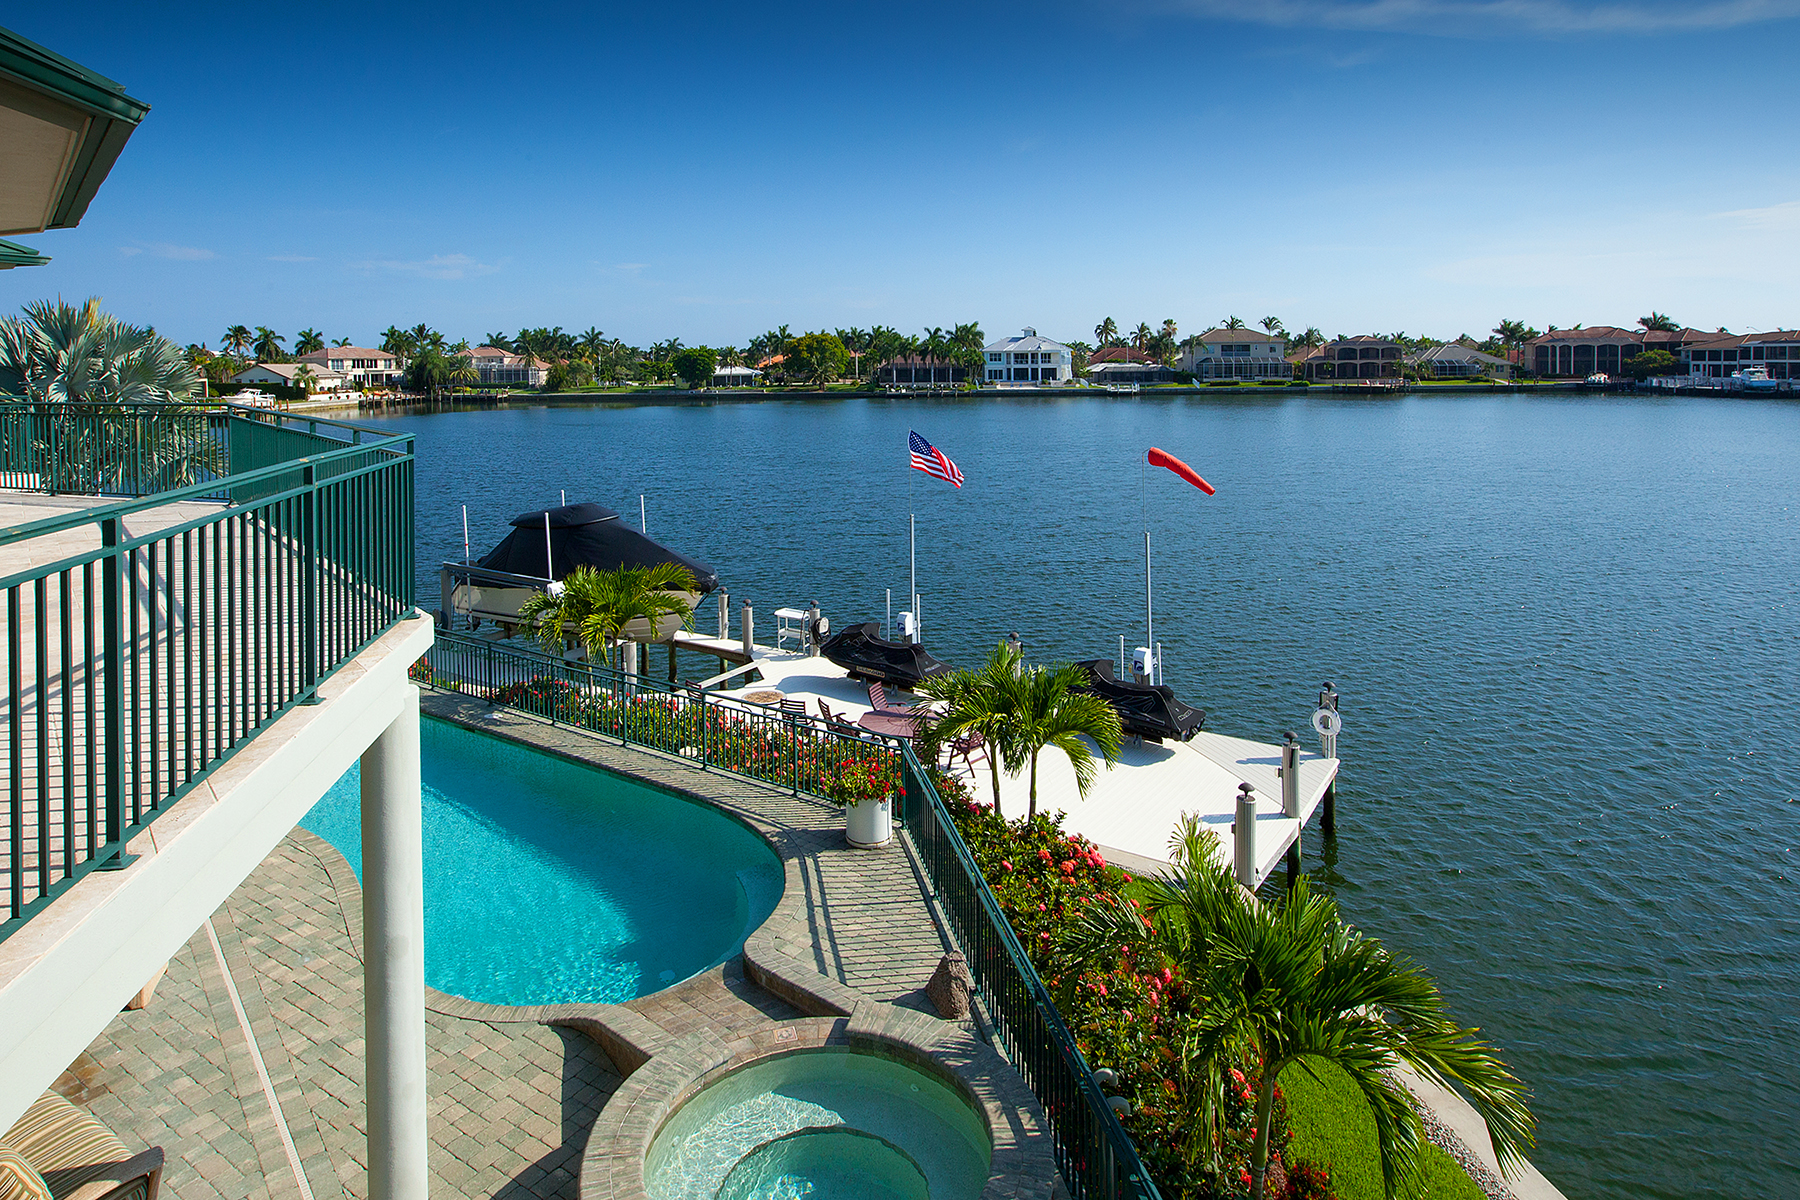 Single Family Home for Sale at MARCO ISLAND - TULIP COURT 940 Tulip Ct Marco Island, Florida 34145 United States